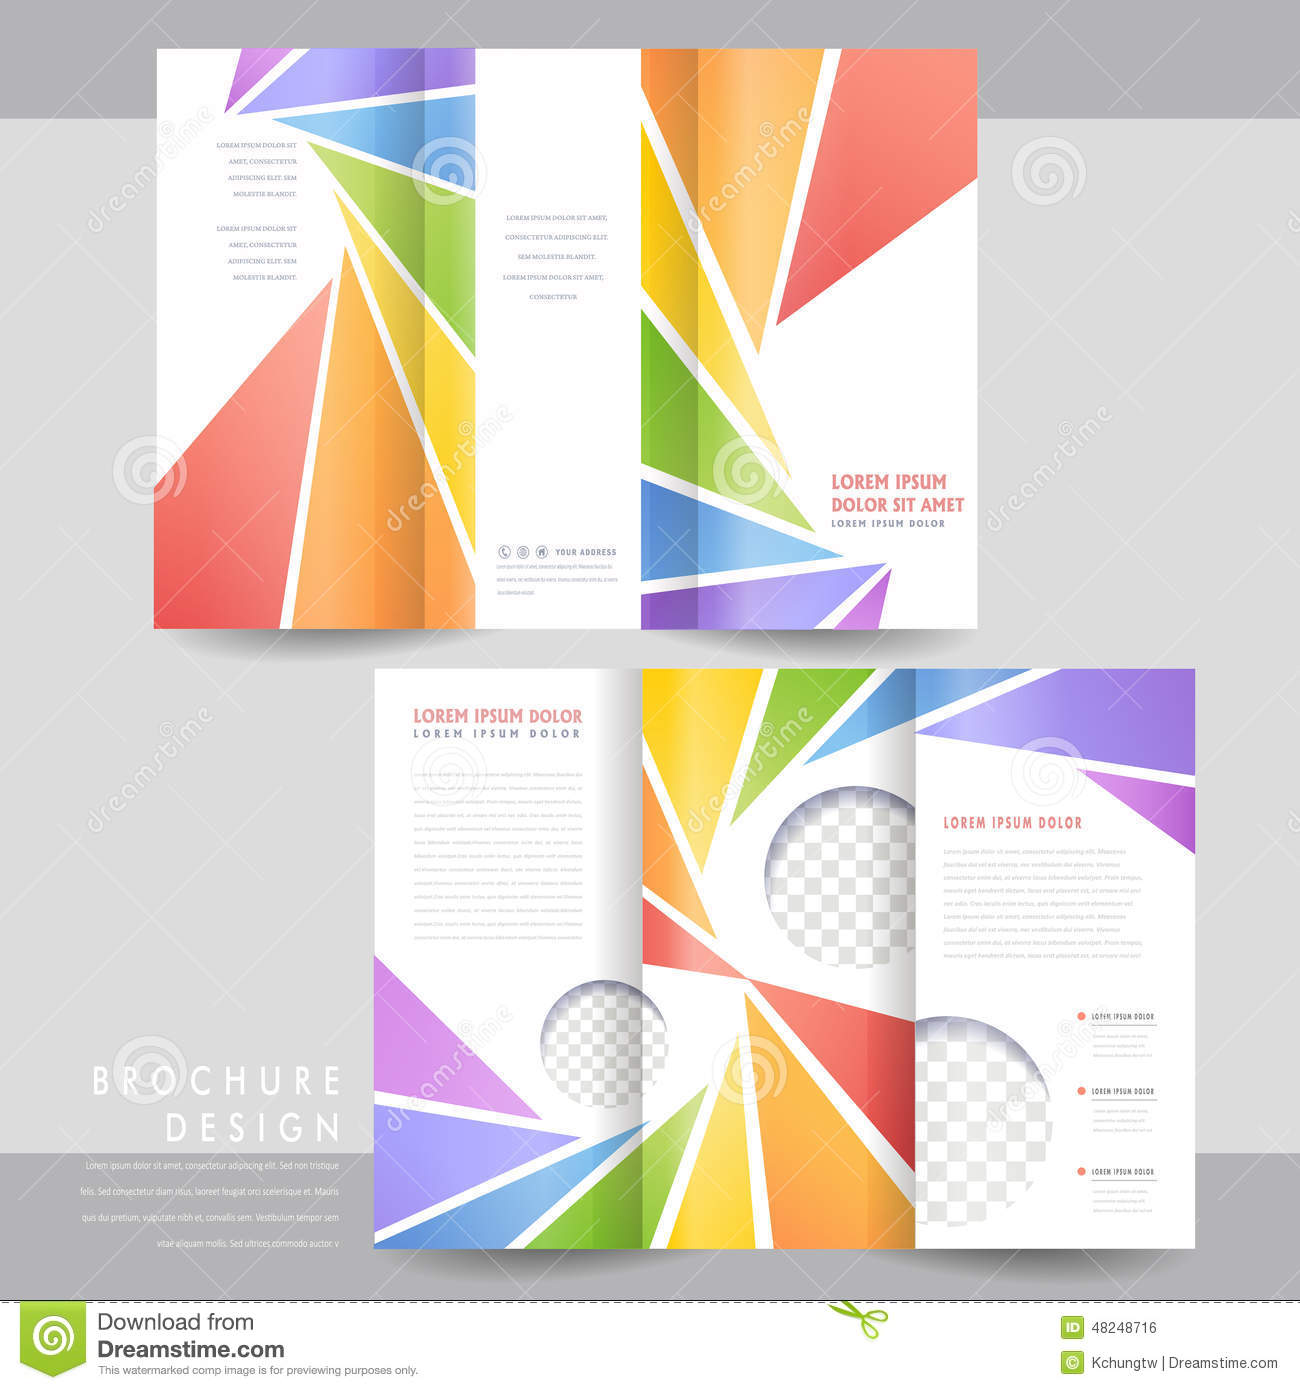 Colorful tri fold brochure template design stock vector for Tri fold brochure templates